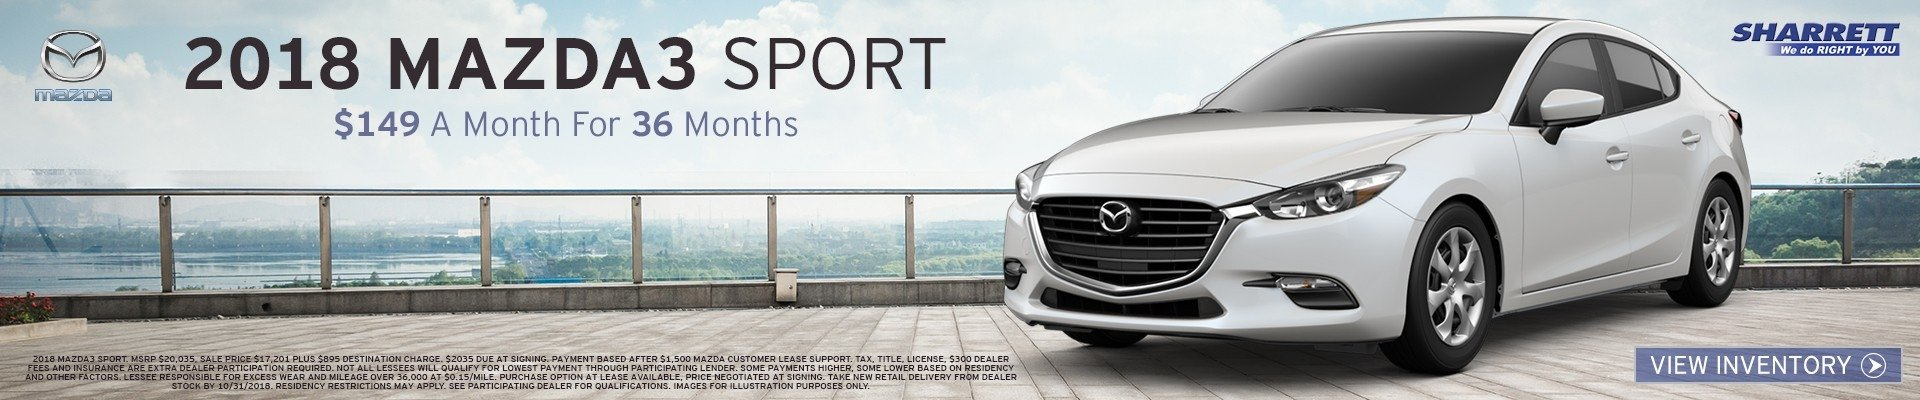 Lease a 2018 Mazda3 Sport for $149/mo for 36 mos